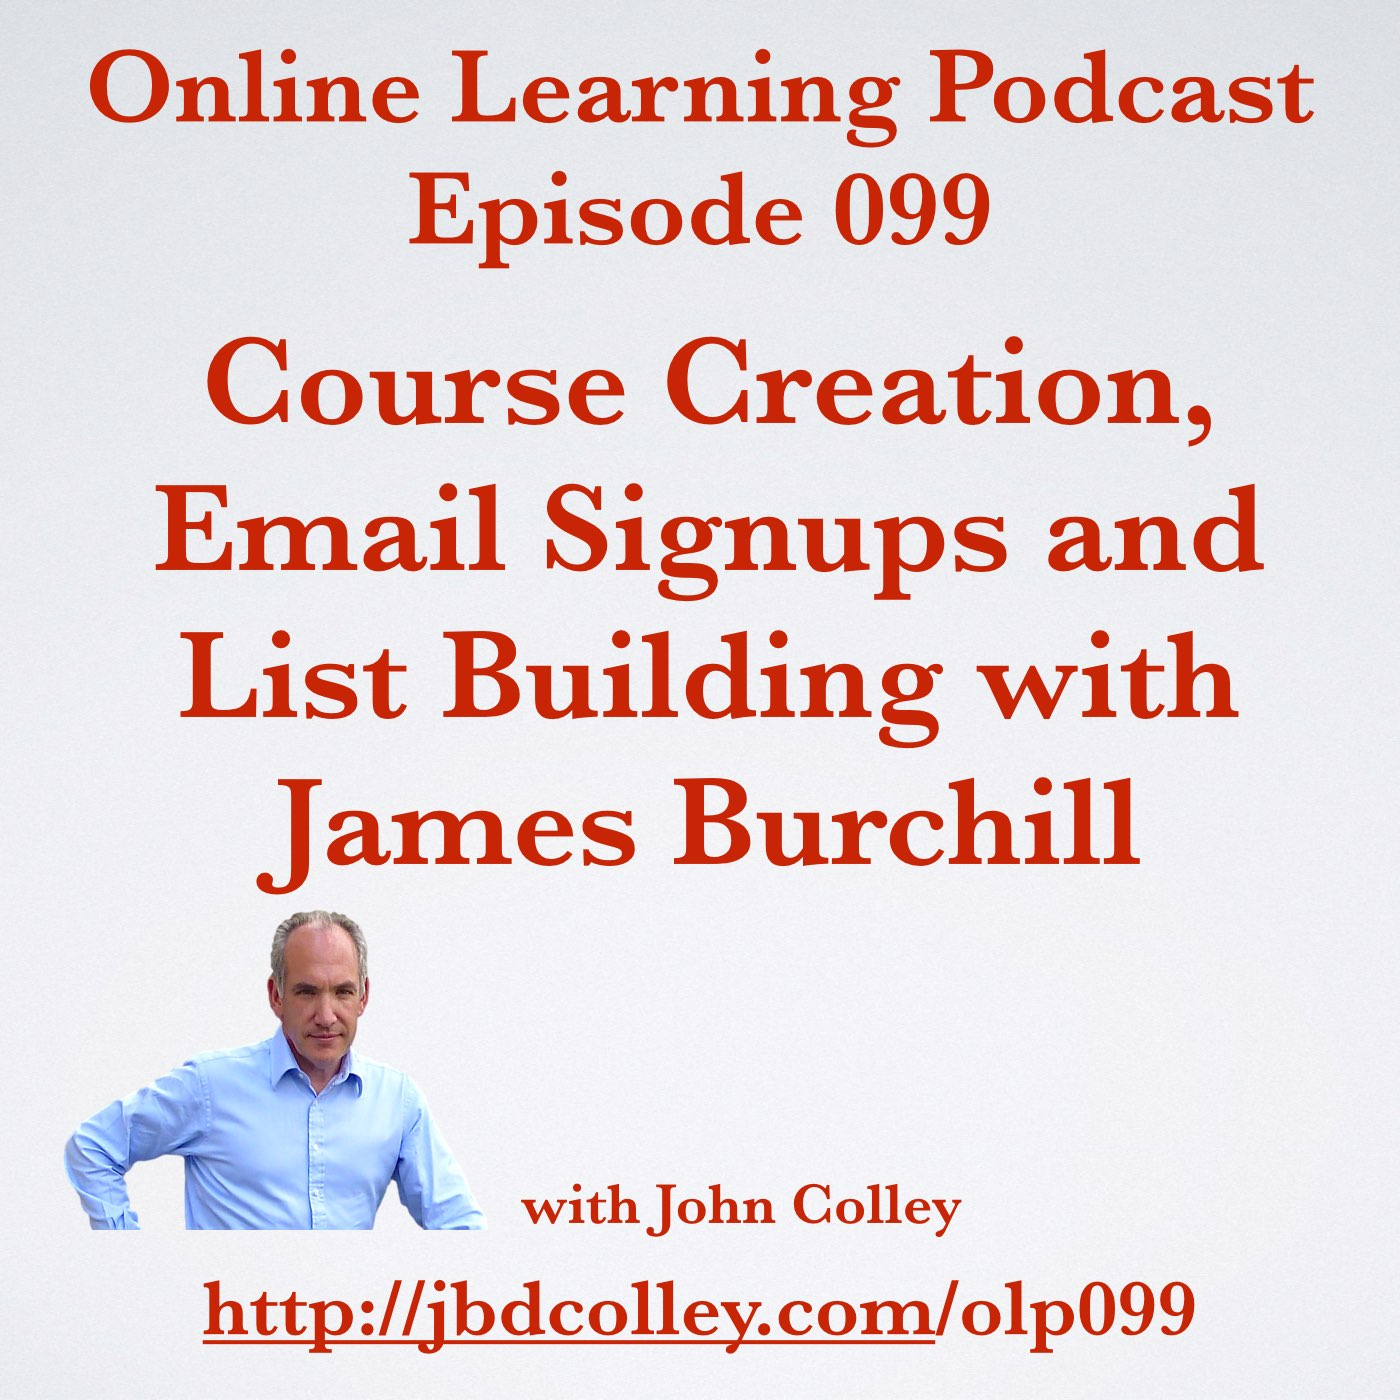 OLP099 Course Creation, Email Signups and List Building with James Burchill